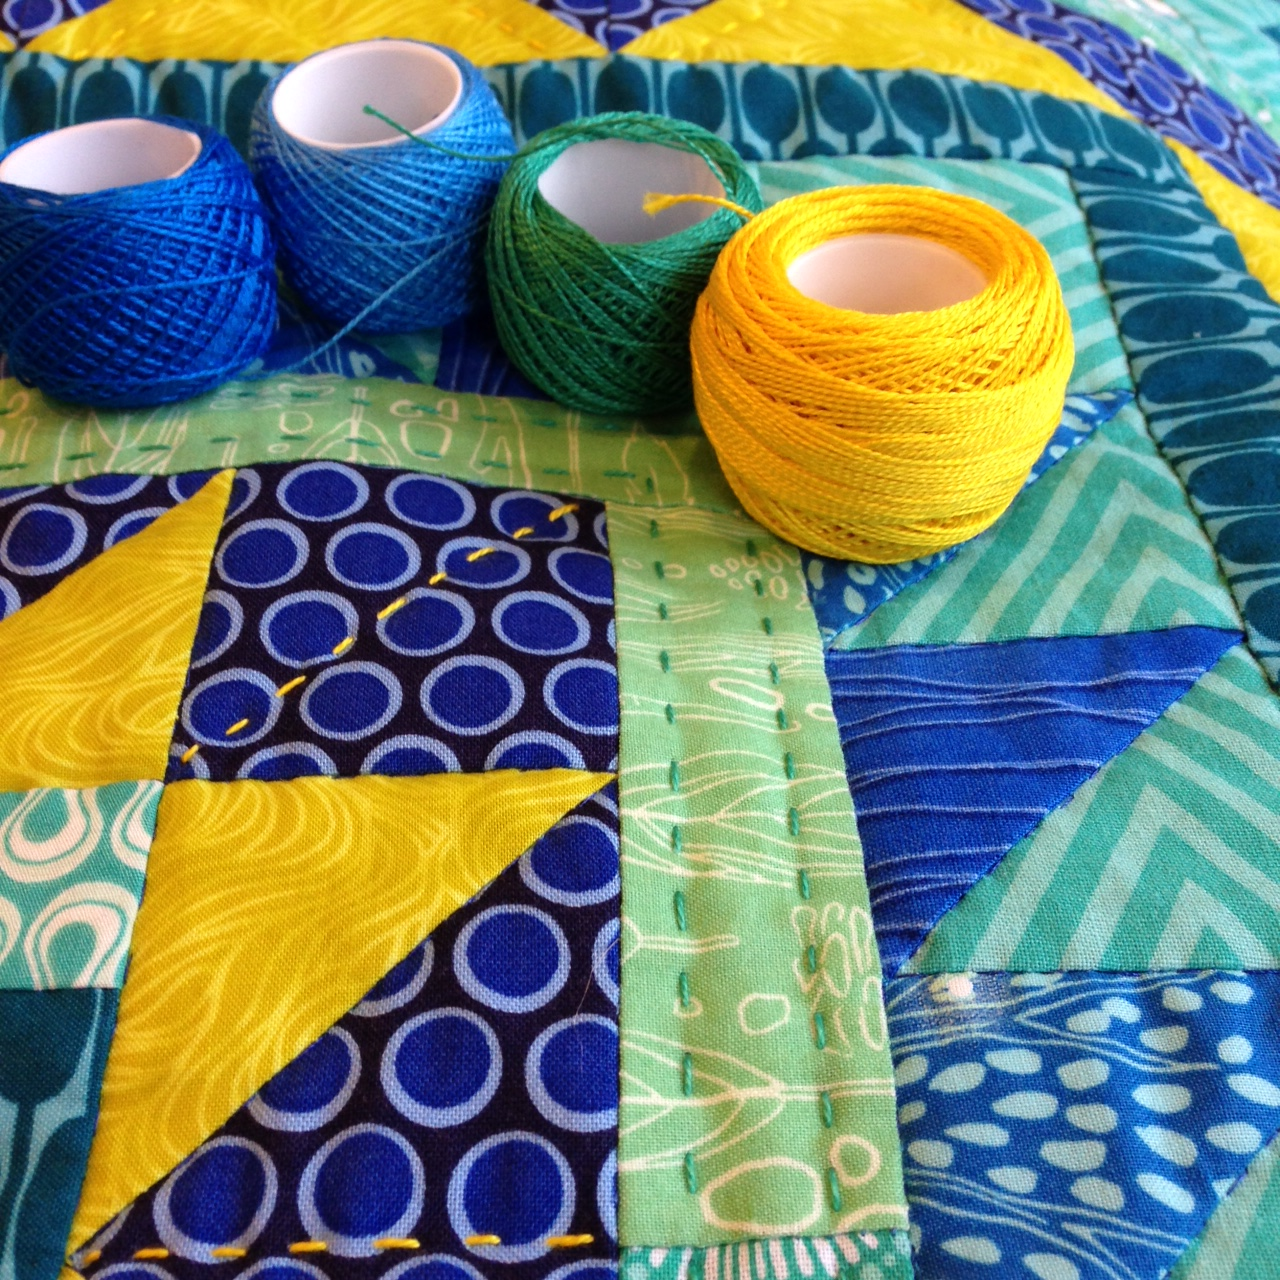 Wendy's quilts and more: Celebrate Hand Quilting